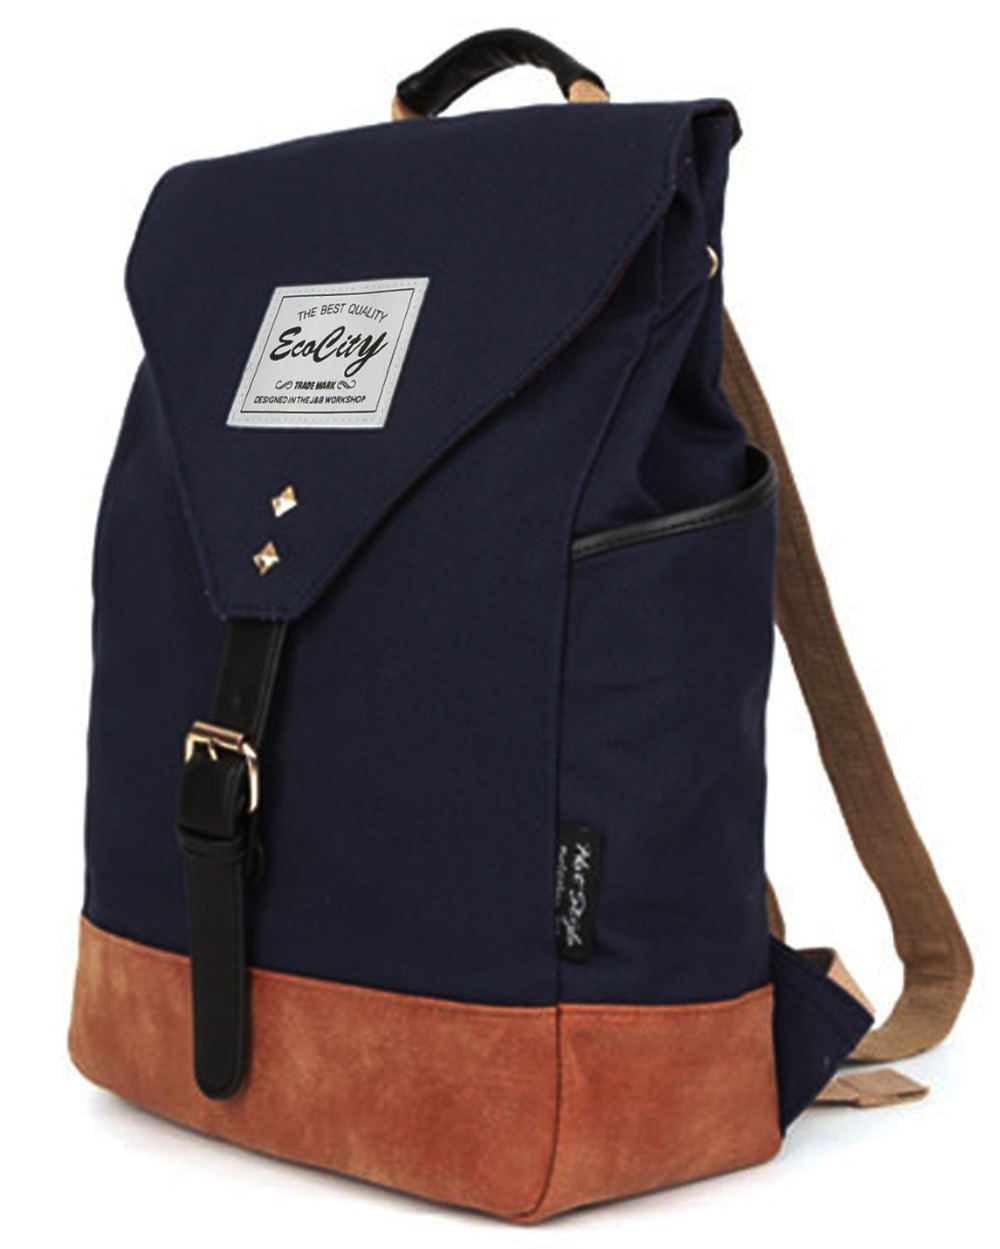 Free shipping on backpacks at bestyload7od.cf Shop Herschel, Fjallraven and more. Totally free shipping and returns.